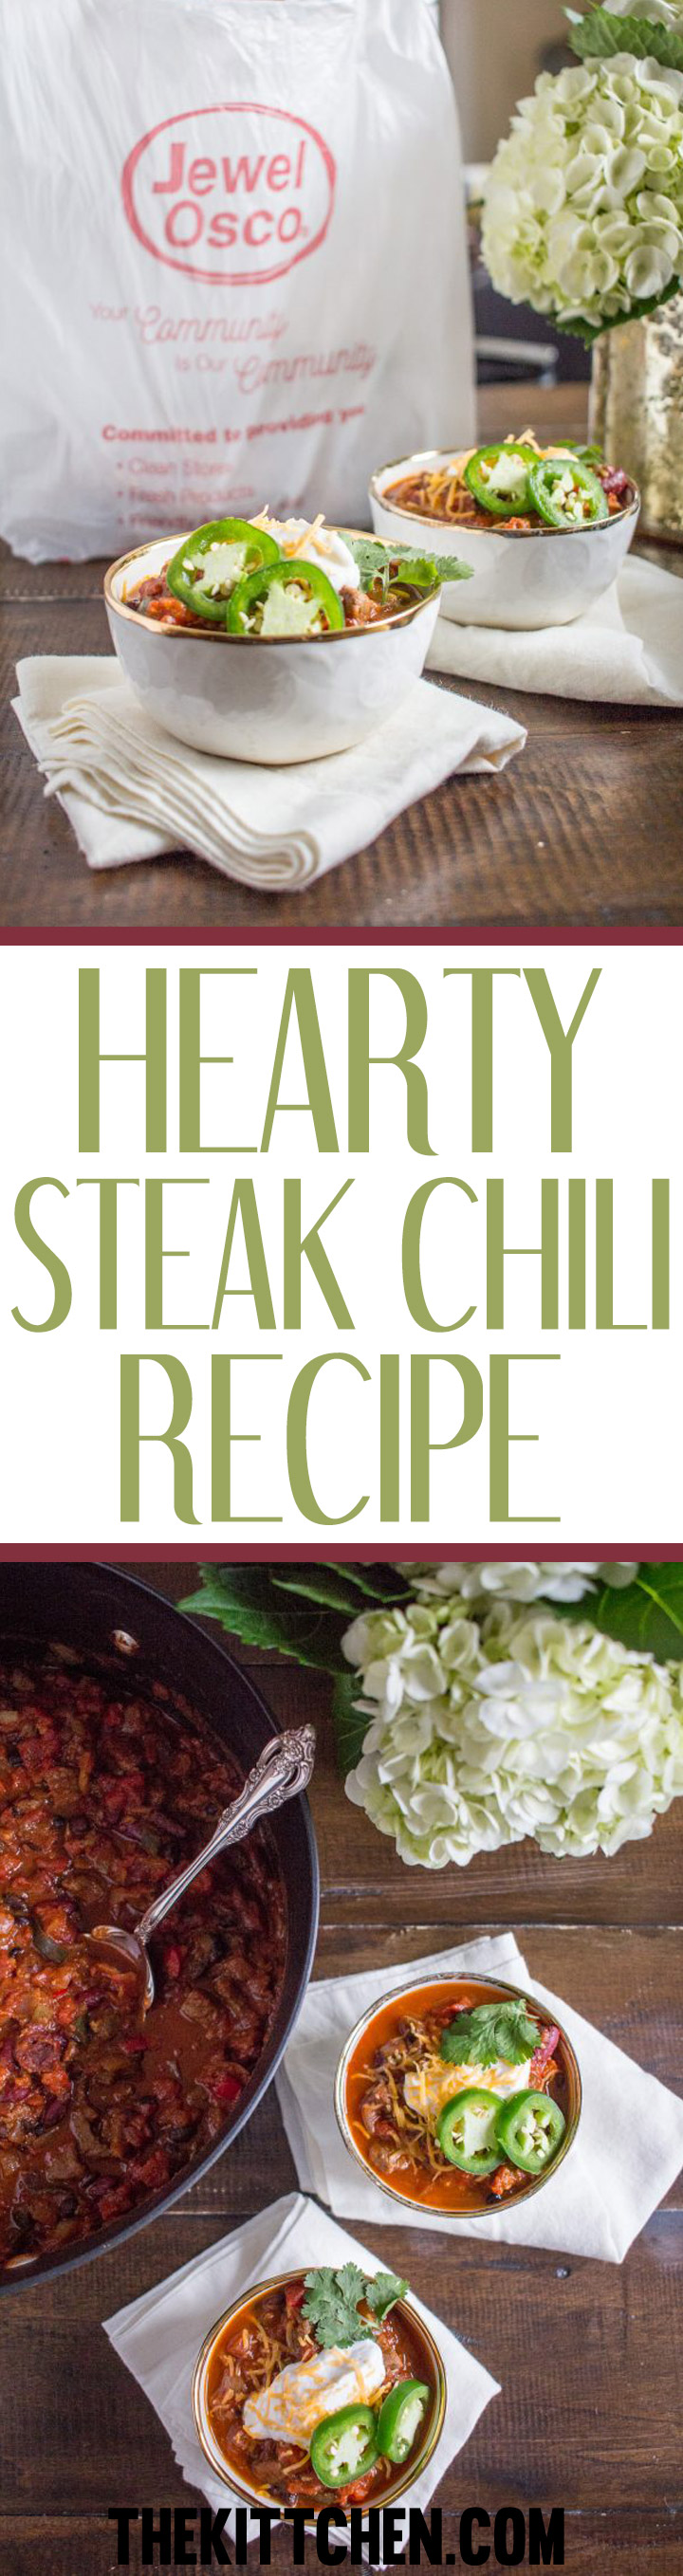 This hearty steak chili recipe is a delicious easy to prepare meal that you will be making on repeat all winter long